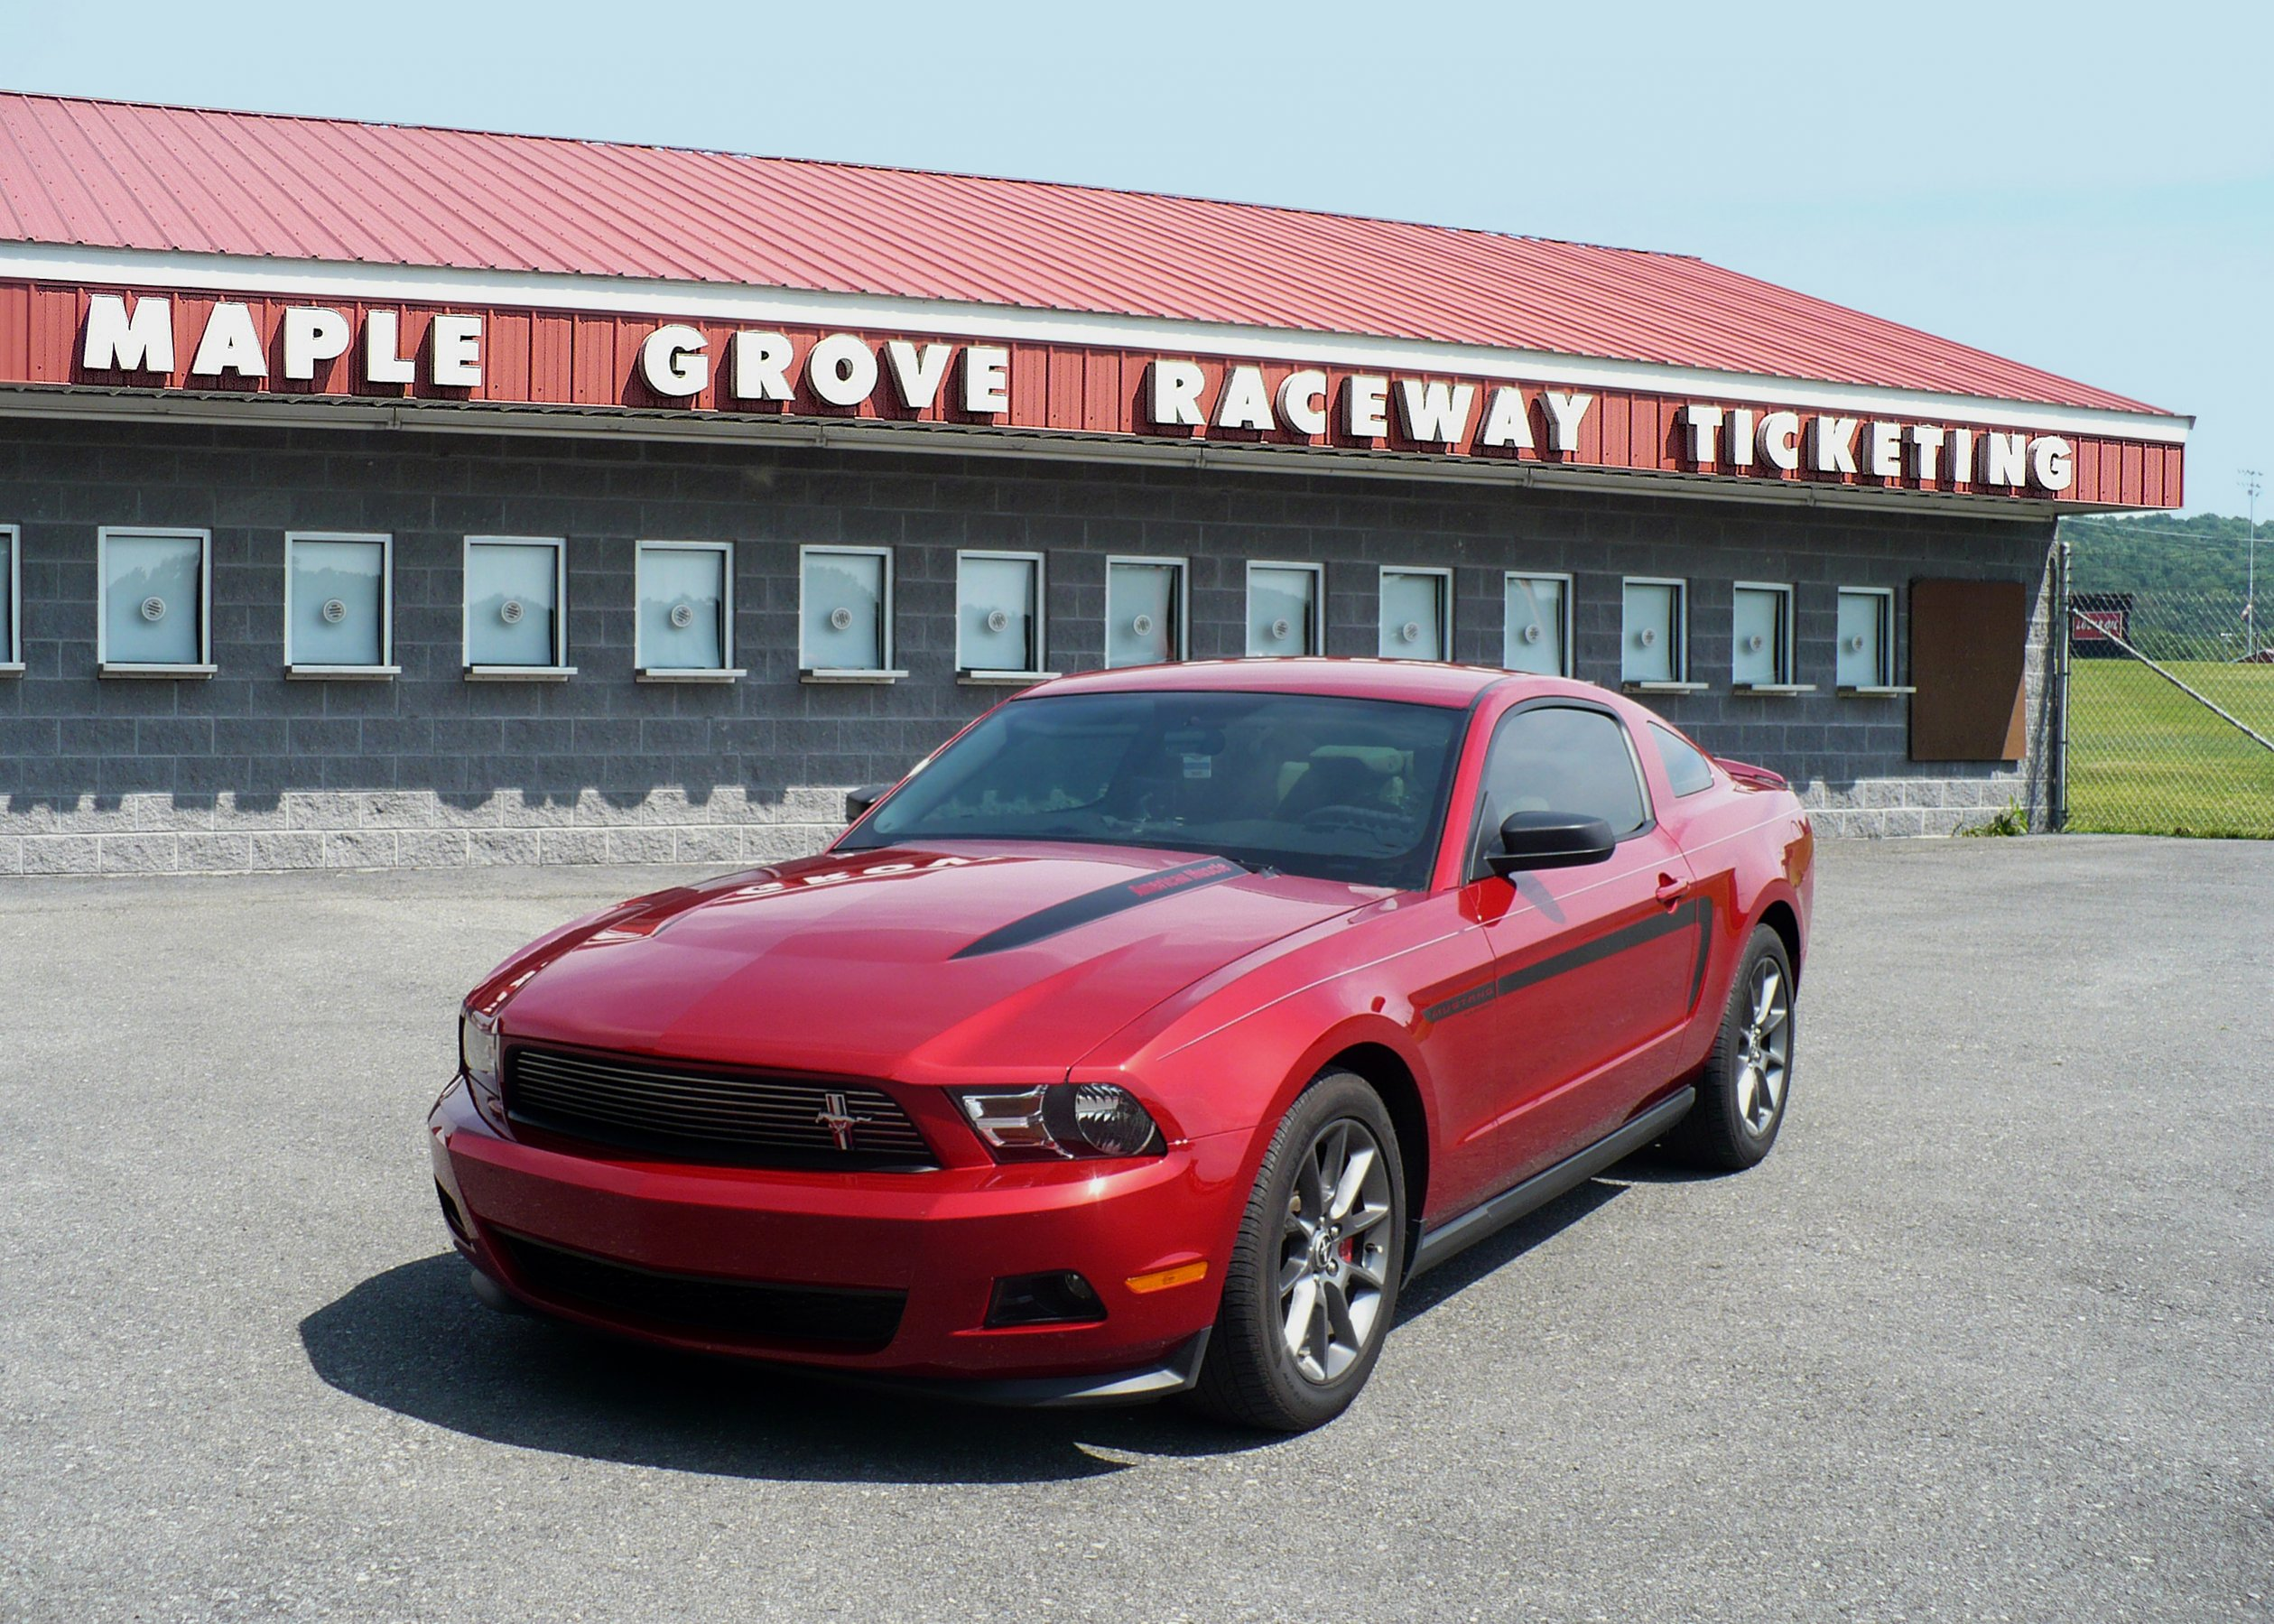 Click image for larger version  Name:Maple Grove Ticketing 5X7.jpg Views:96 Size:831.4 KB ID:188247